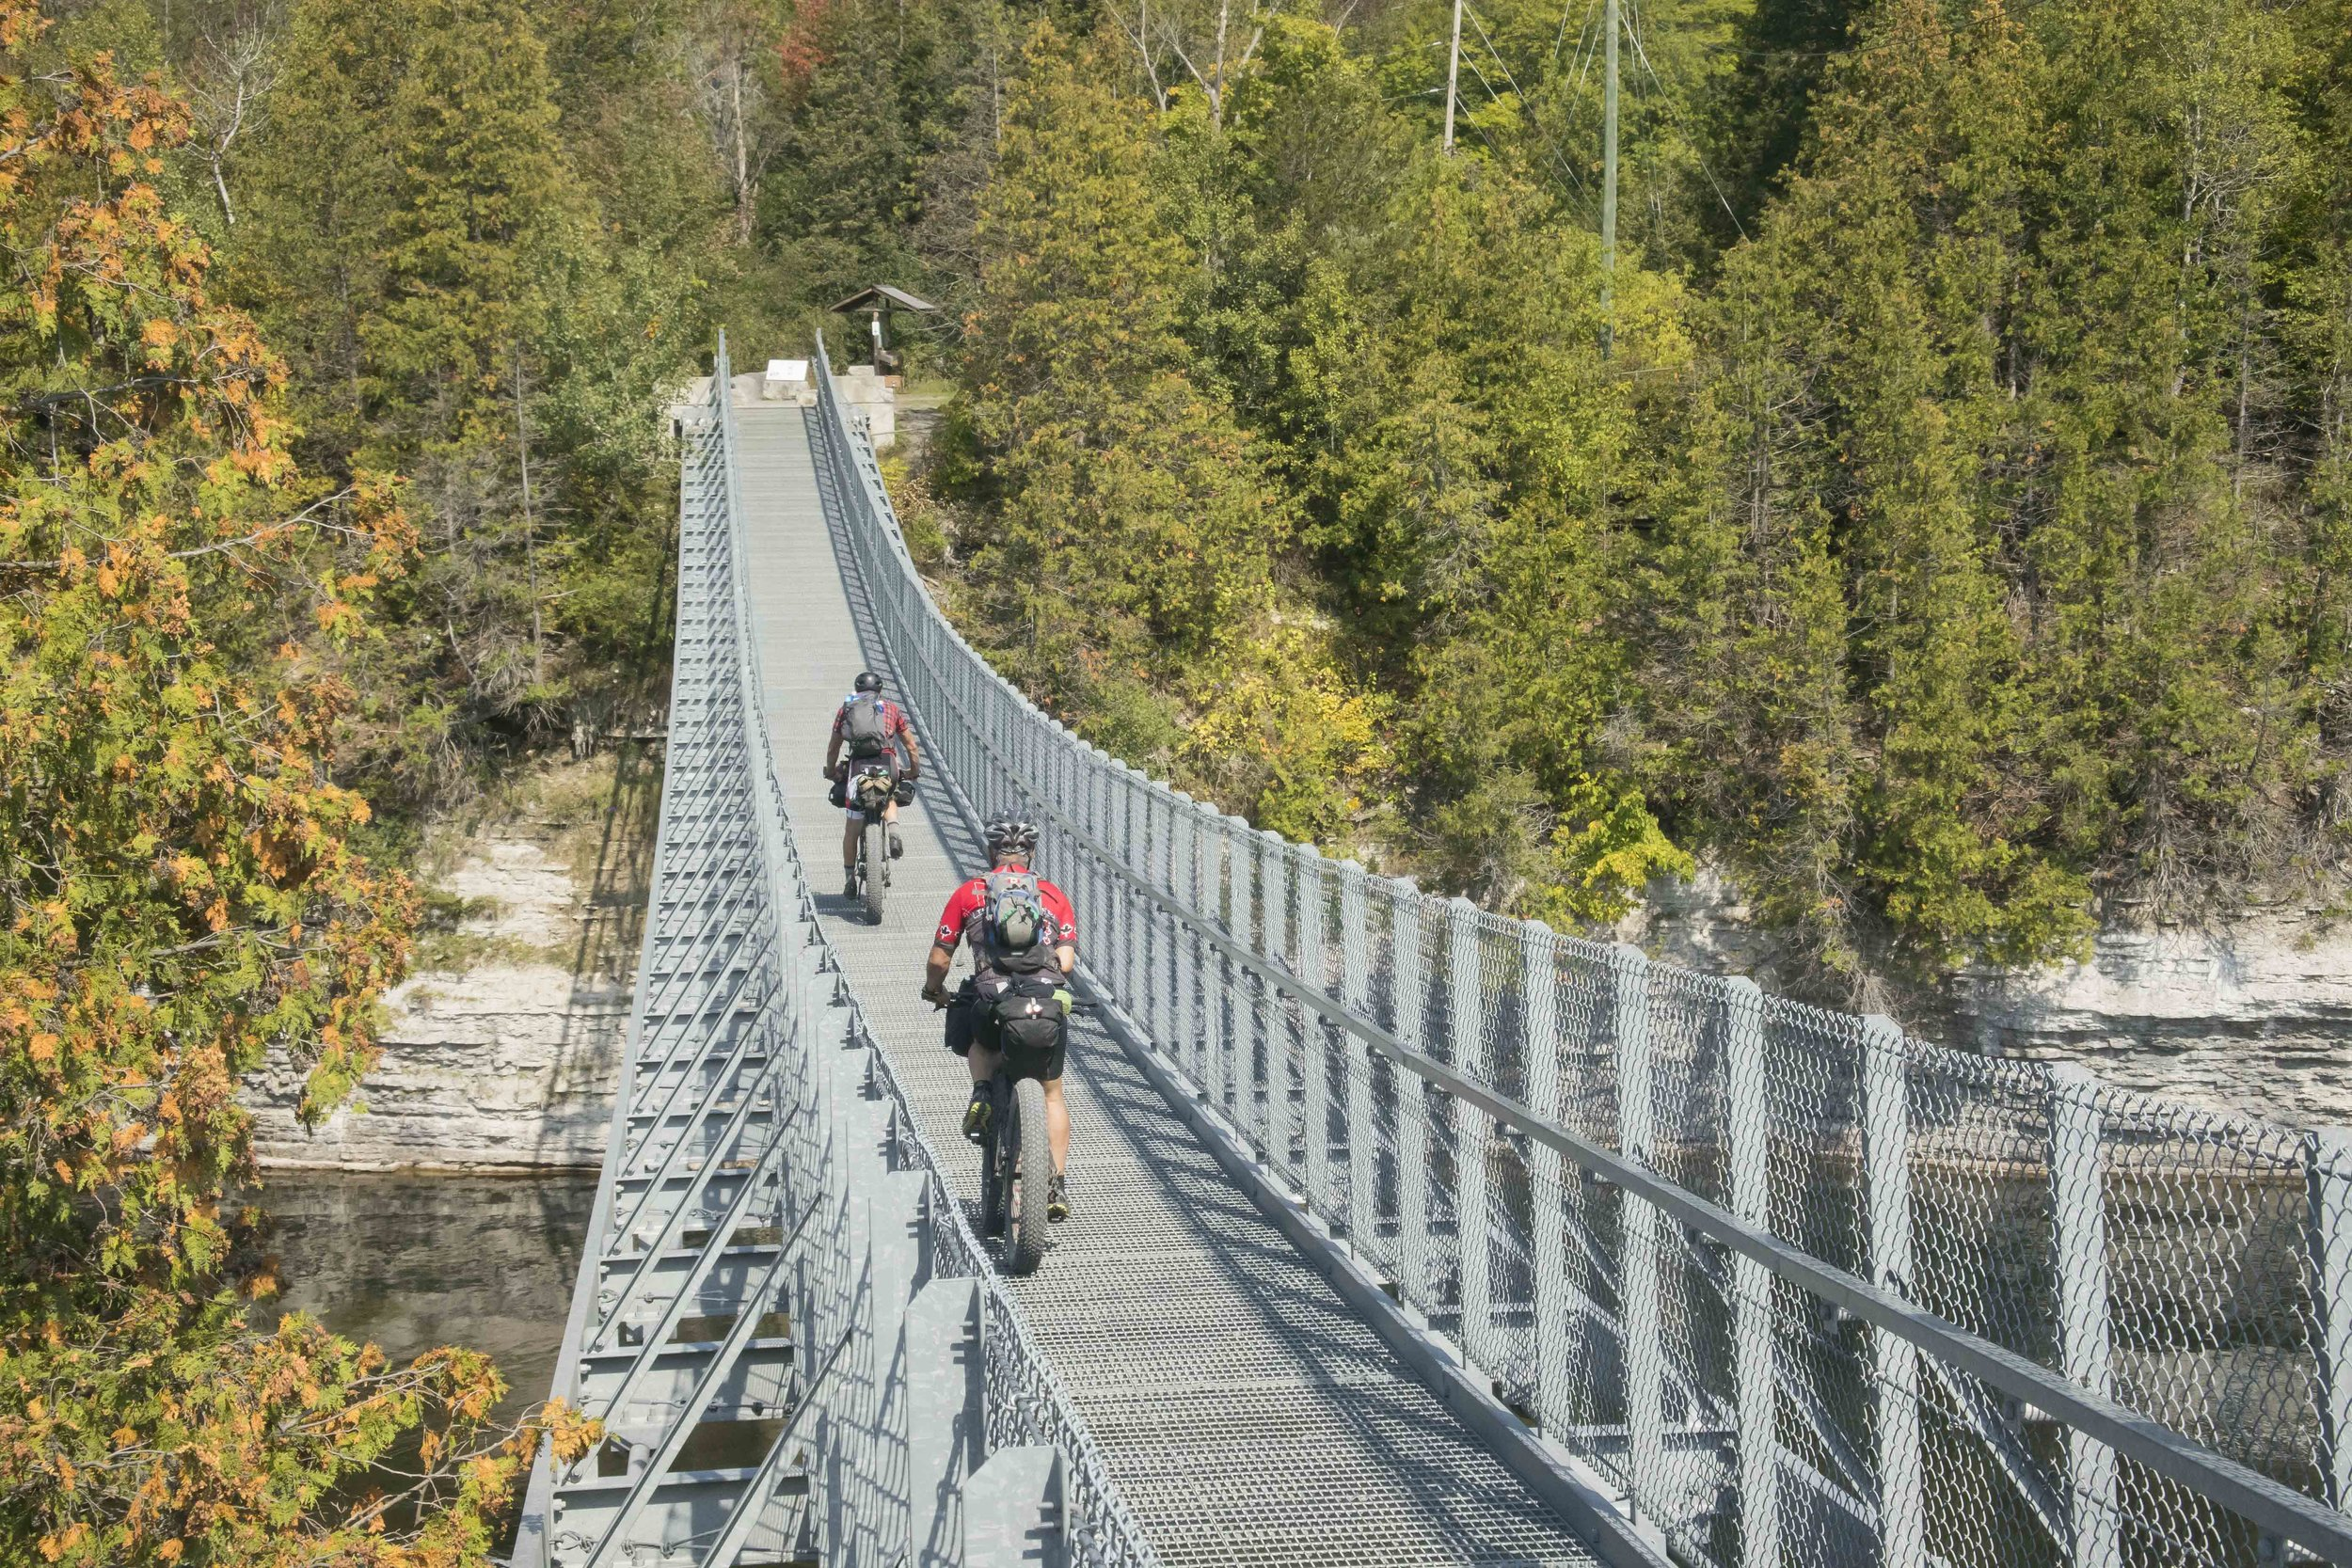 Cycling across the Ranny Gorge Suspension Bridge